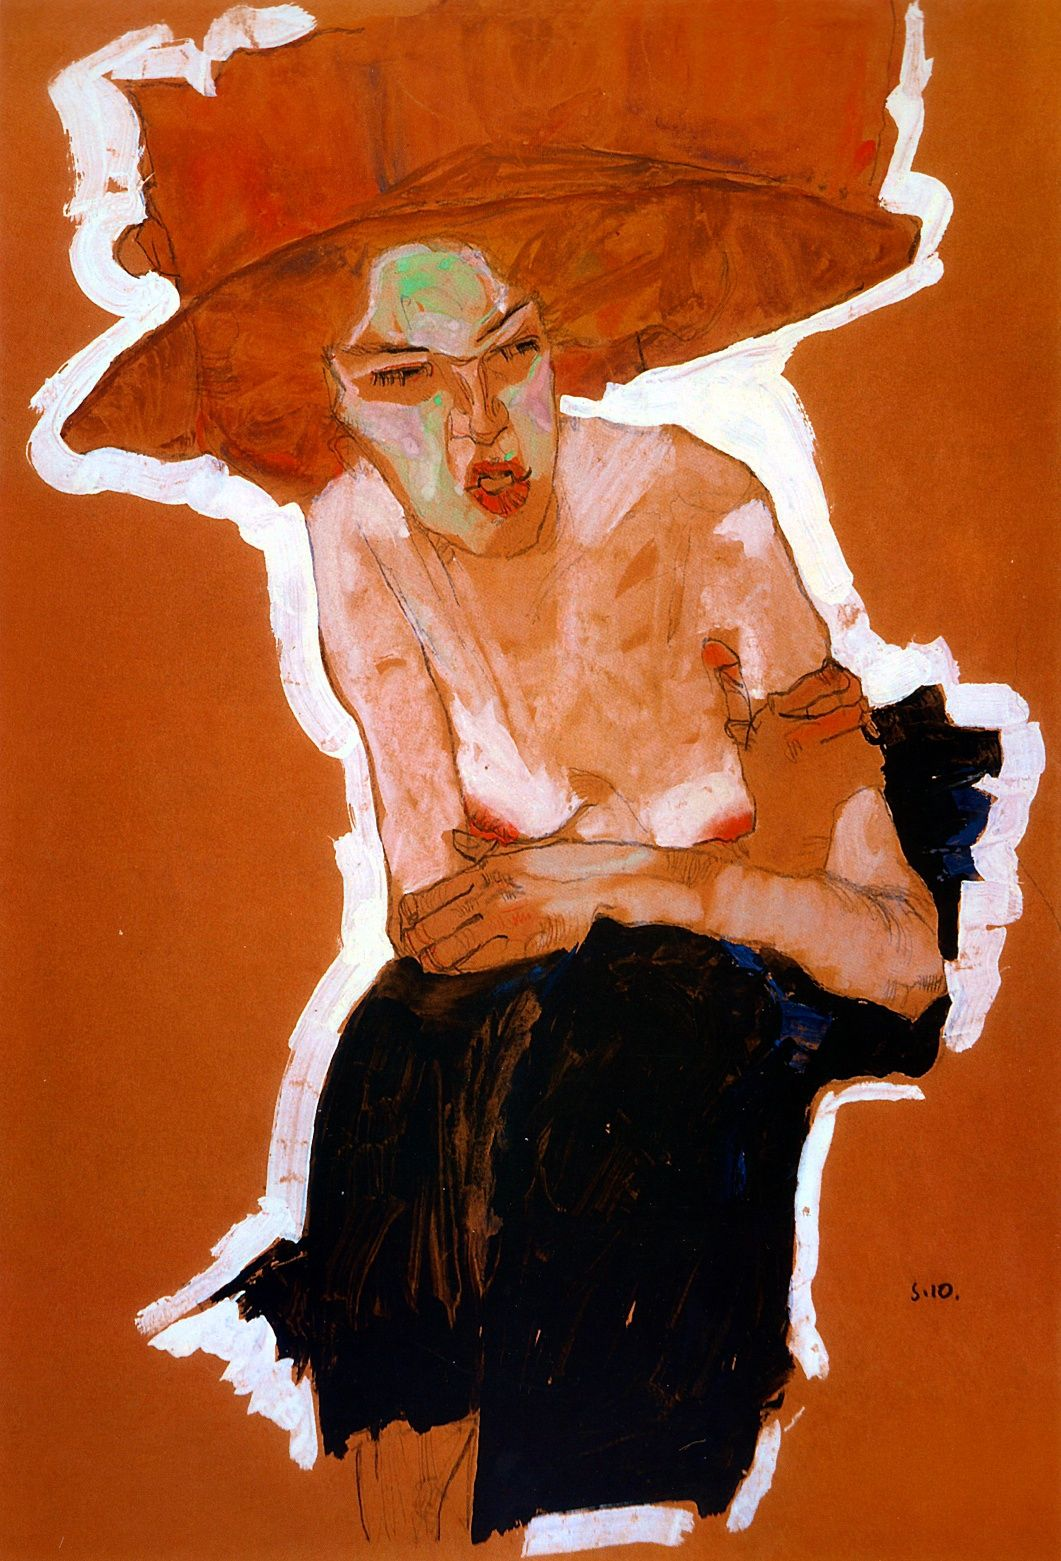 The scornful Woman (Gertrude Schiele), 1910 - Egon Schiele  Gouache, watercolor and charcoal with white highlighting, 45 x 31.4 cm  Vienna, Wien Museum